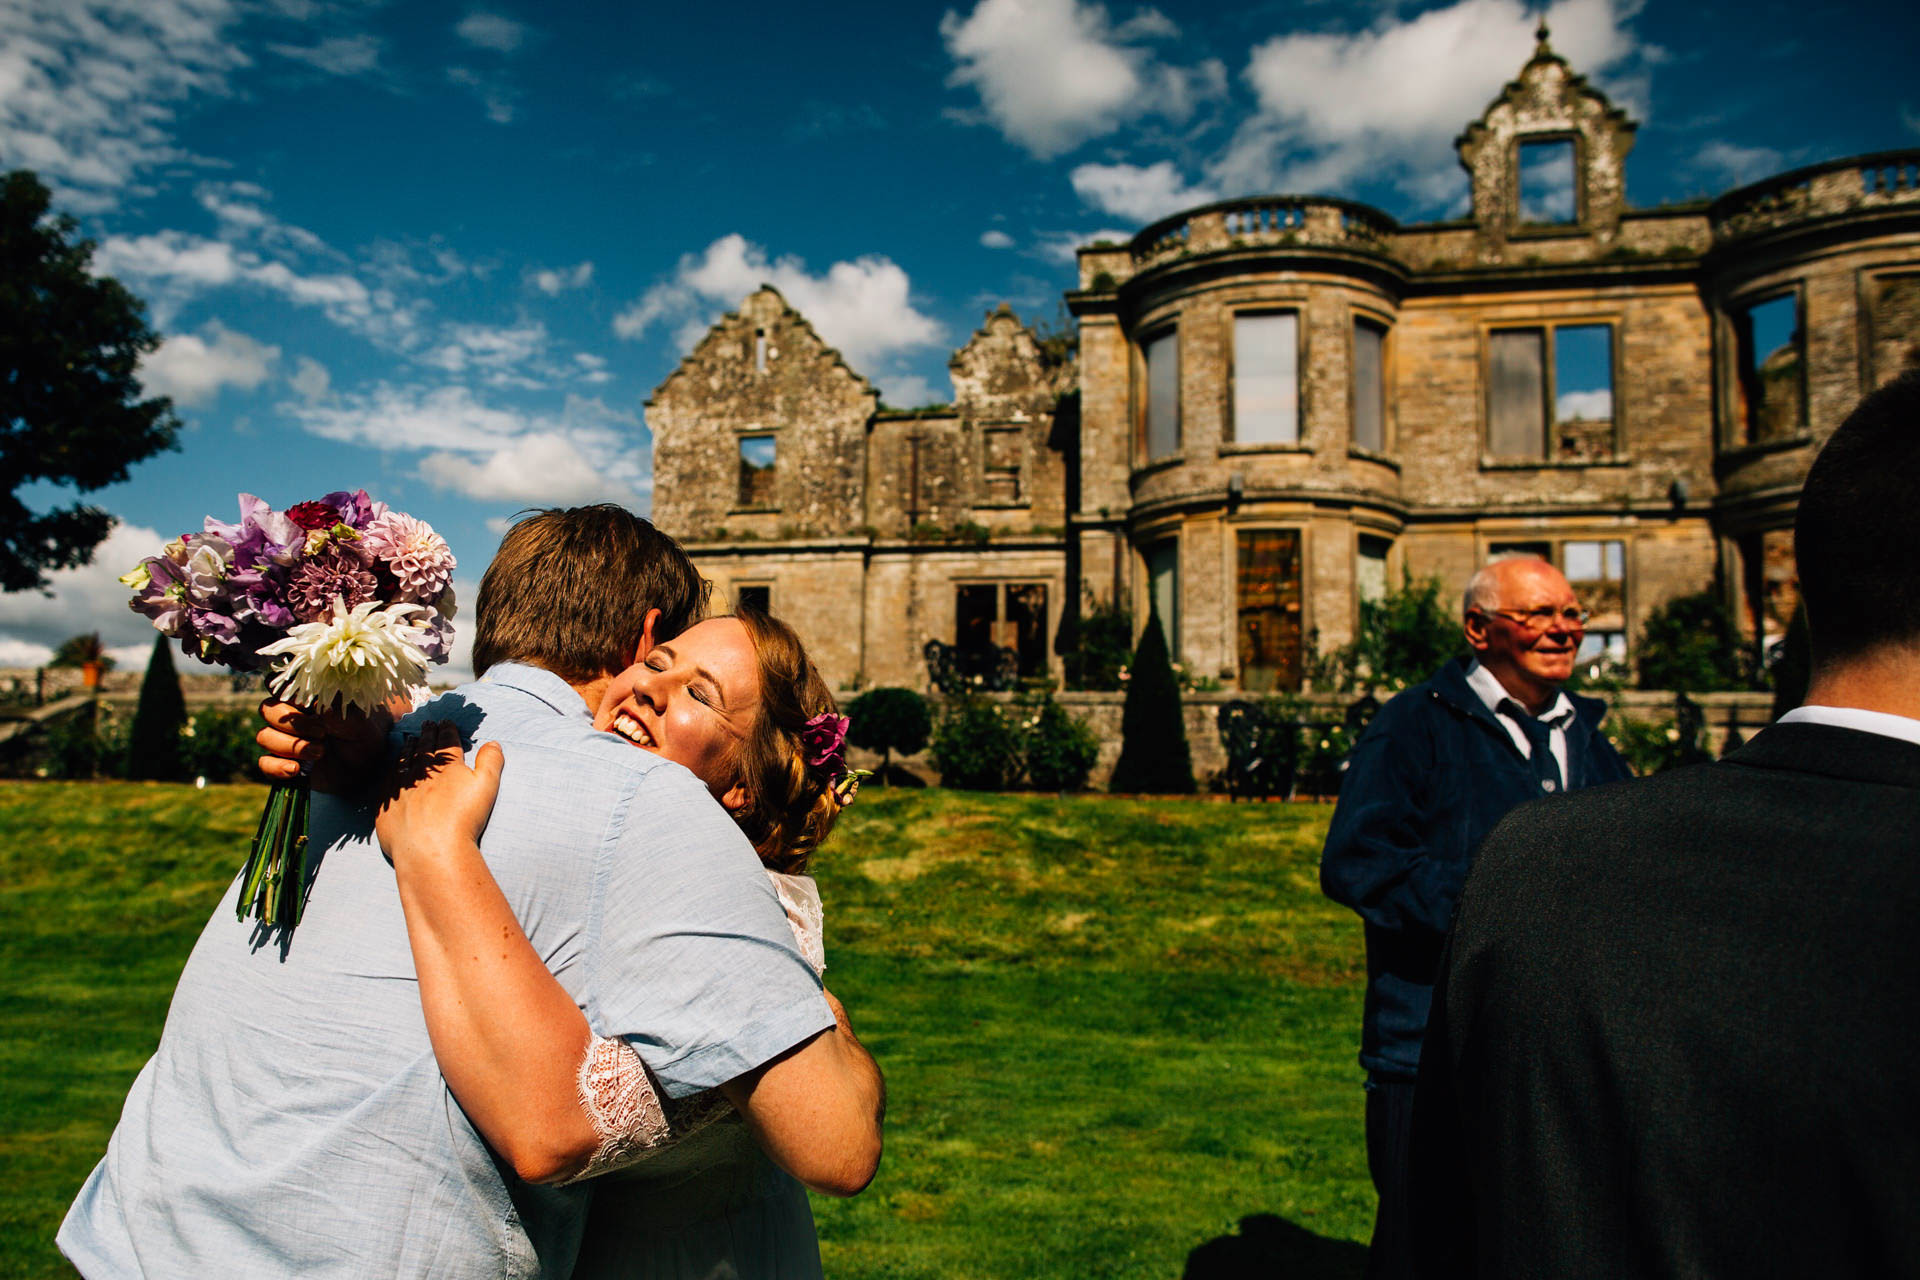 Best wedding photography 2016 - bride hugging outside building ruins